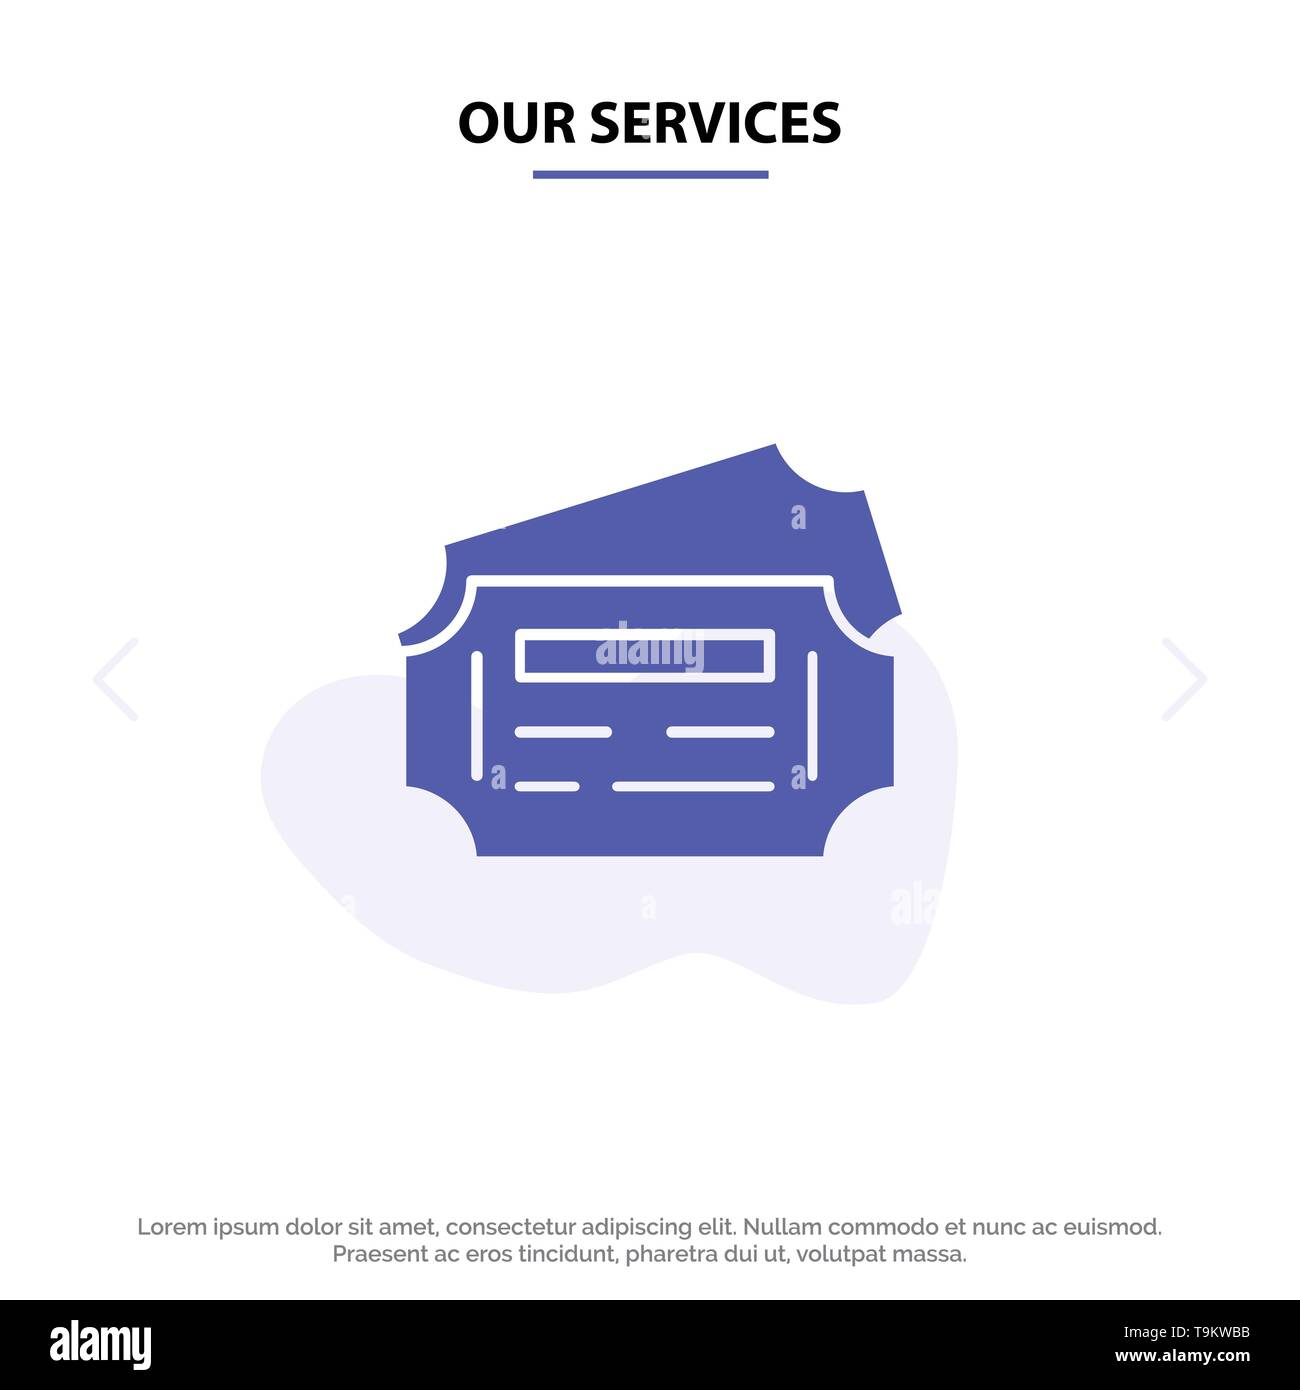 Our Services Train, Ticket, Station Solid Glyph Icon Web card Template - Stock Image